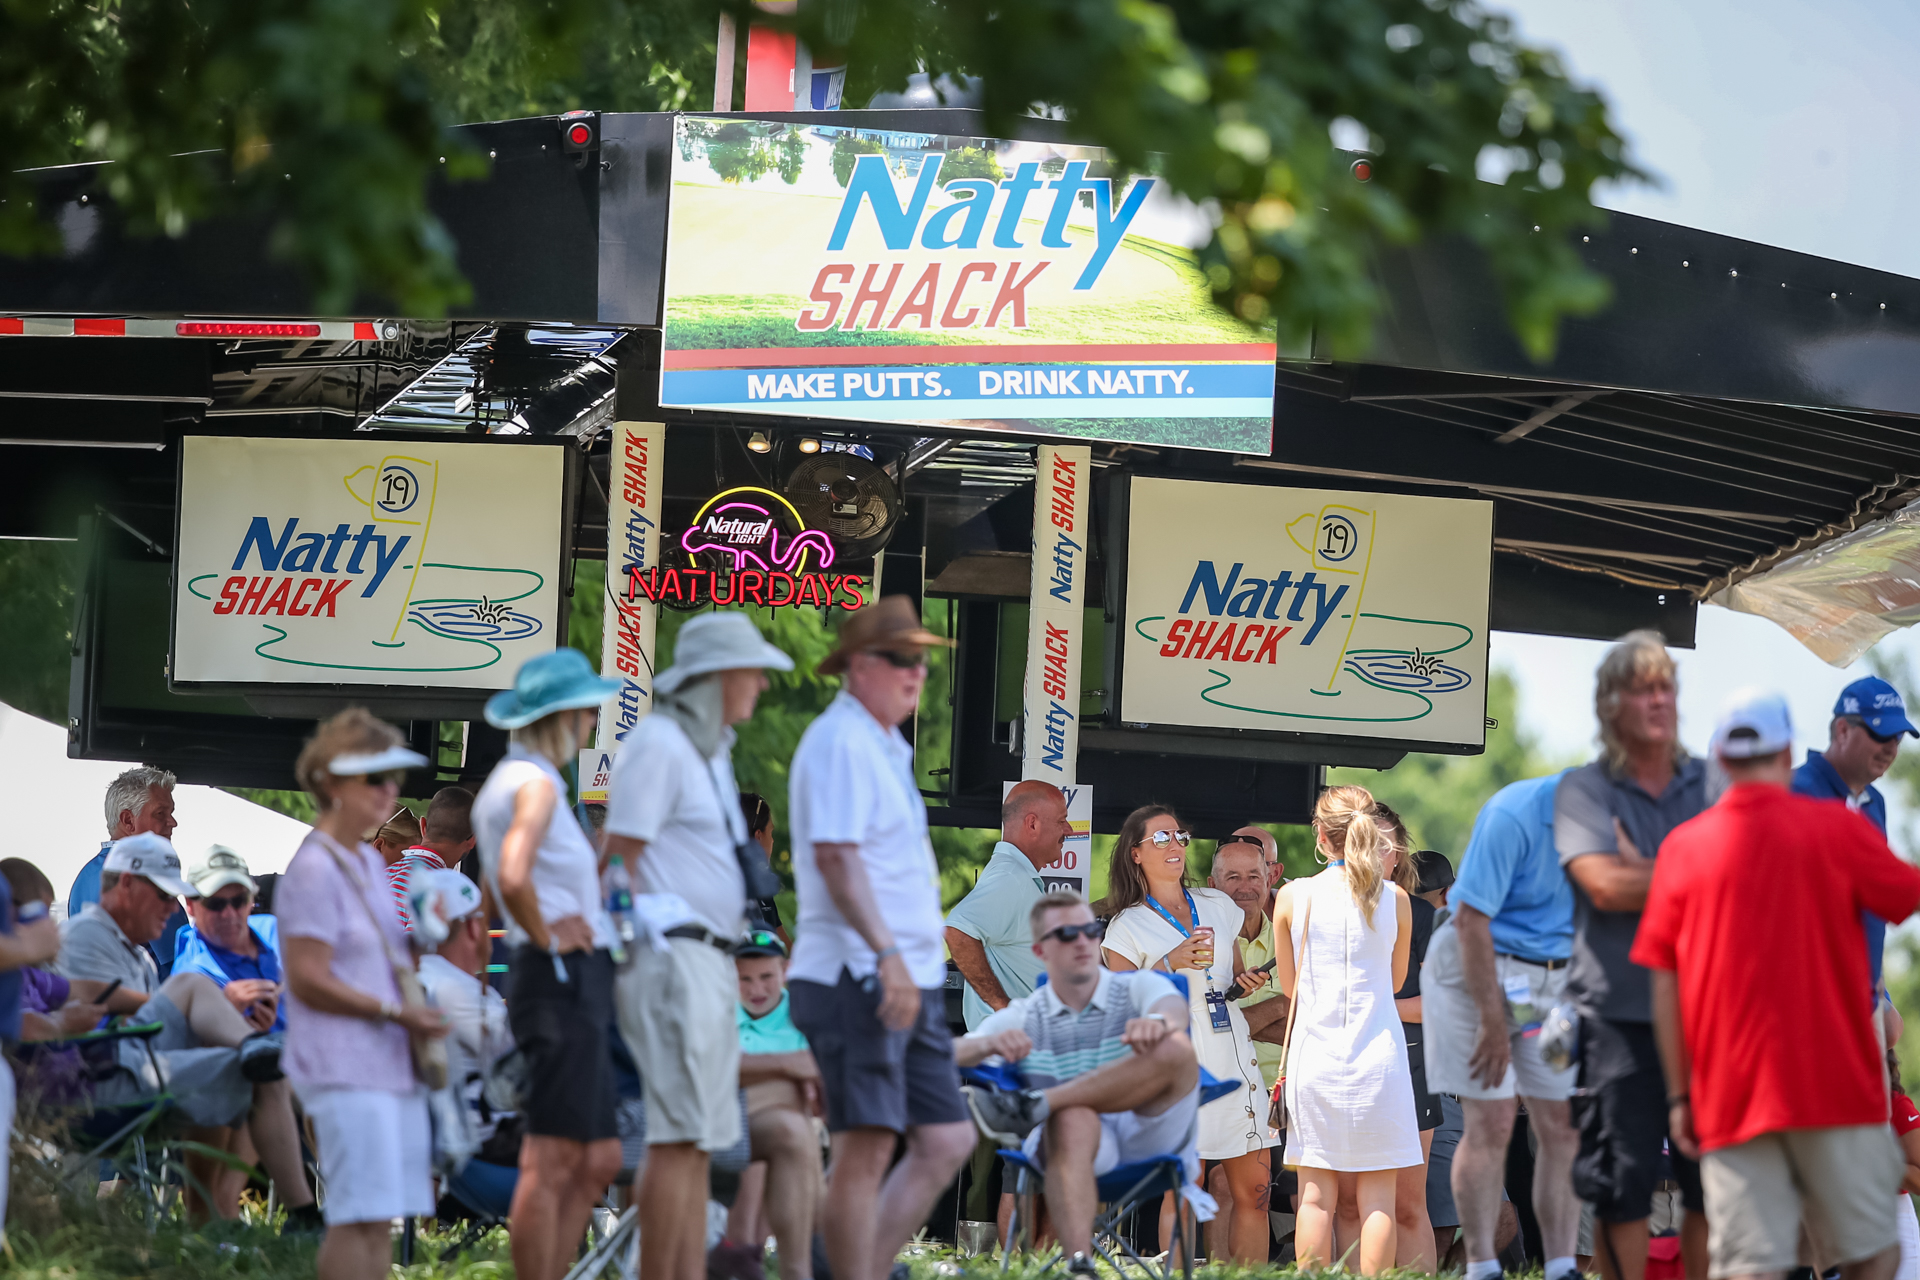 BAR-2019-The Natty Shack is just getting going. $4 beers become $3 beers after a birdie.